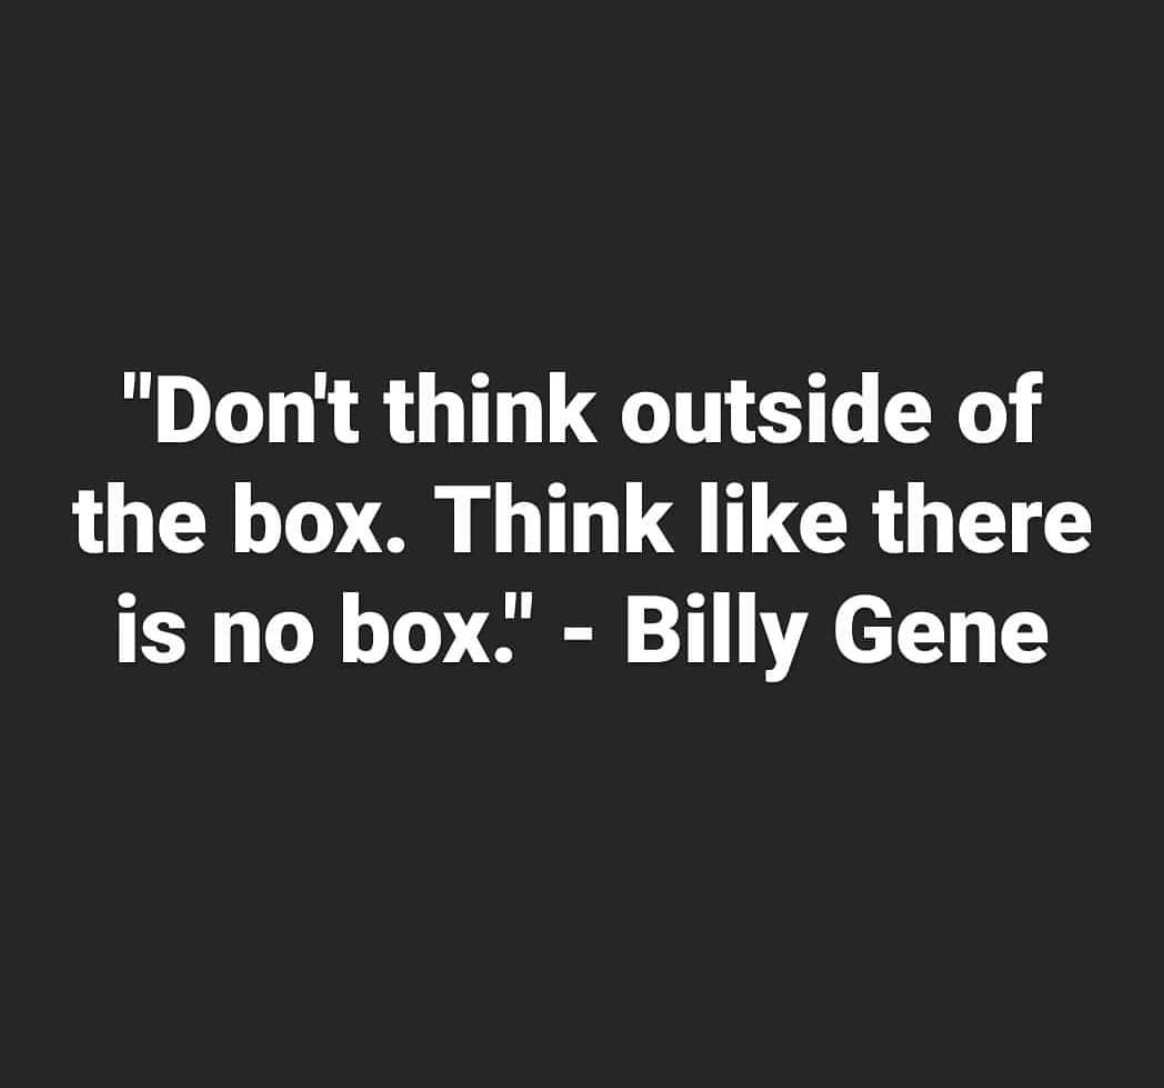 [Image] Don't think outside of the box. Think like there is no box.